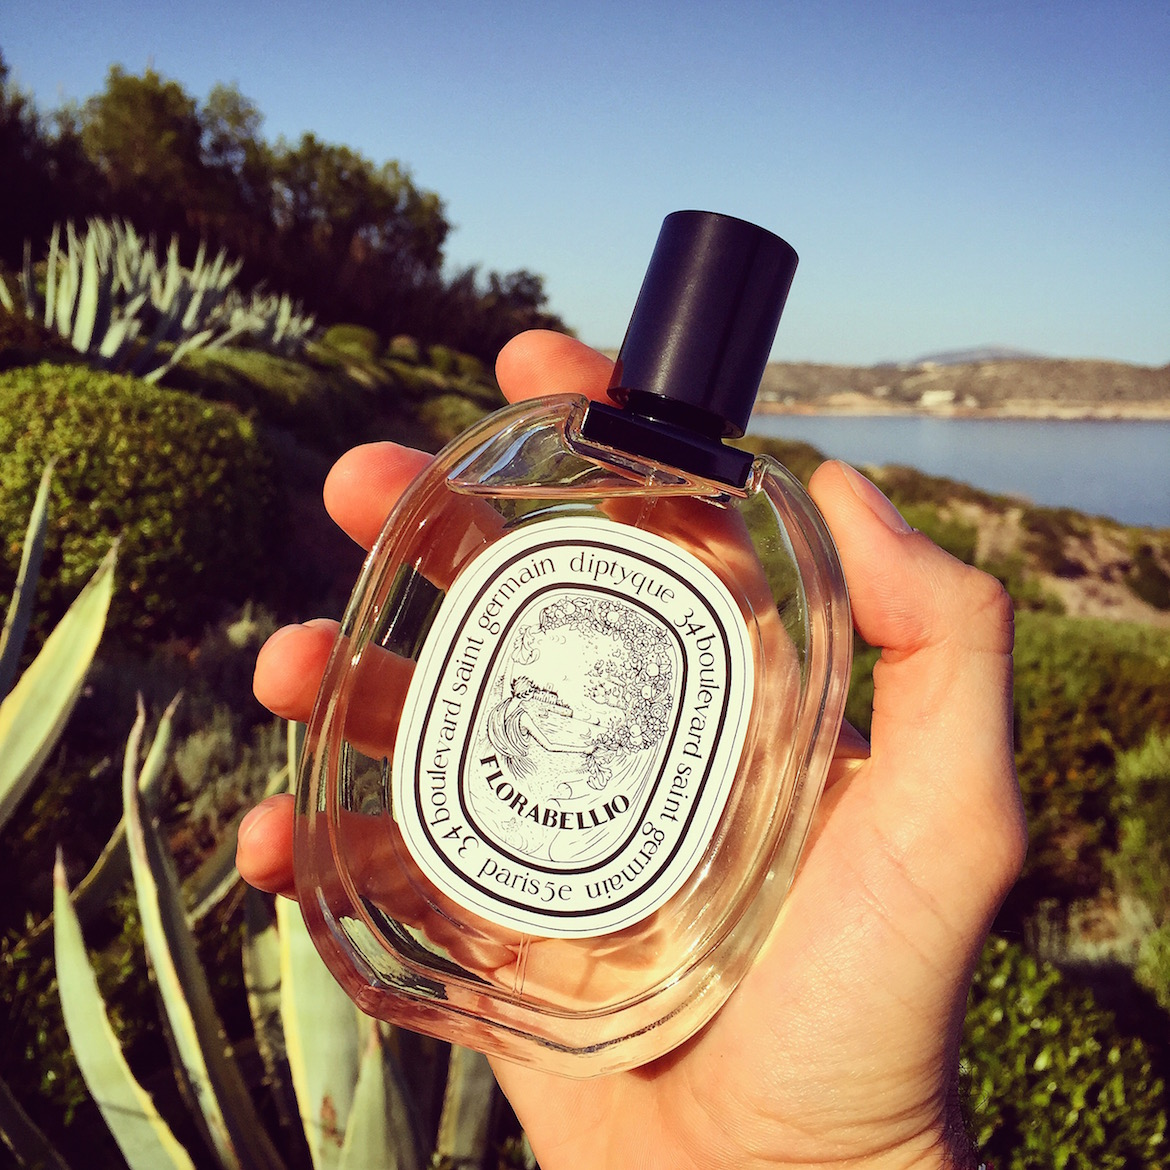 FLARABELLIO brand new fragrance by the exclusive Diptyque series! (Find it at Attica Selective Brands).